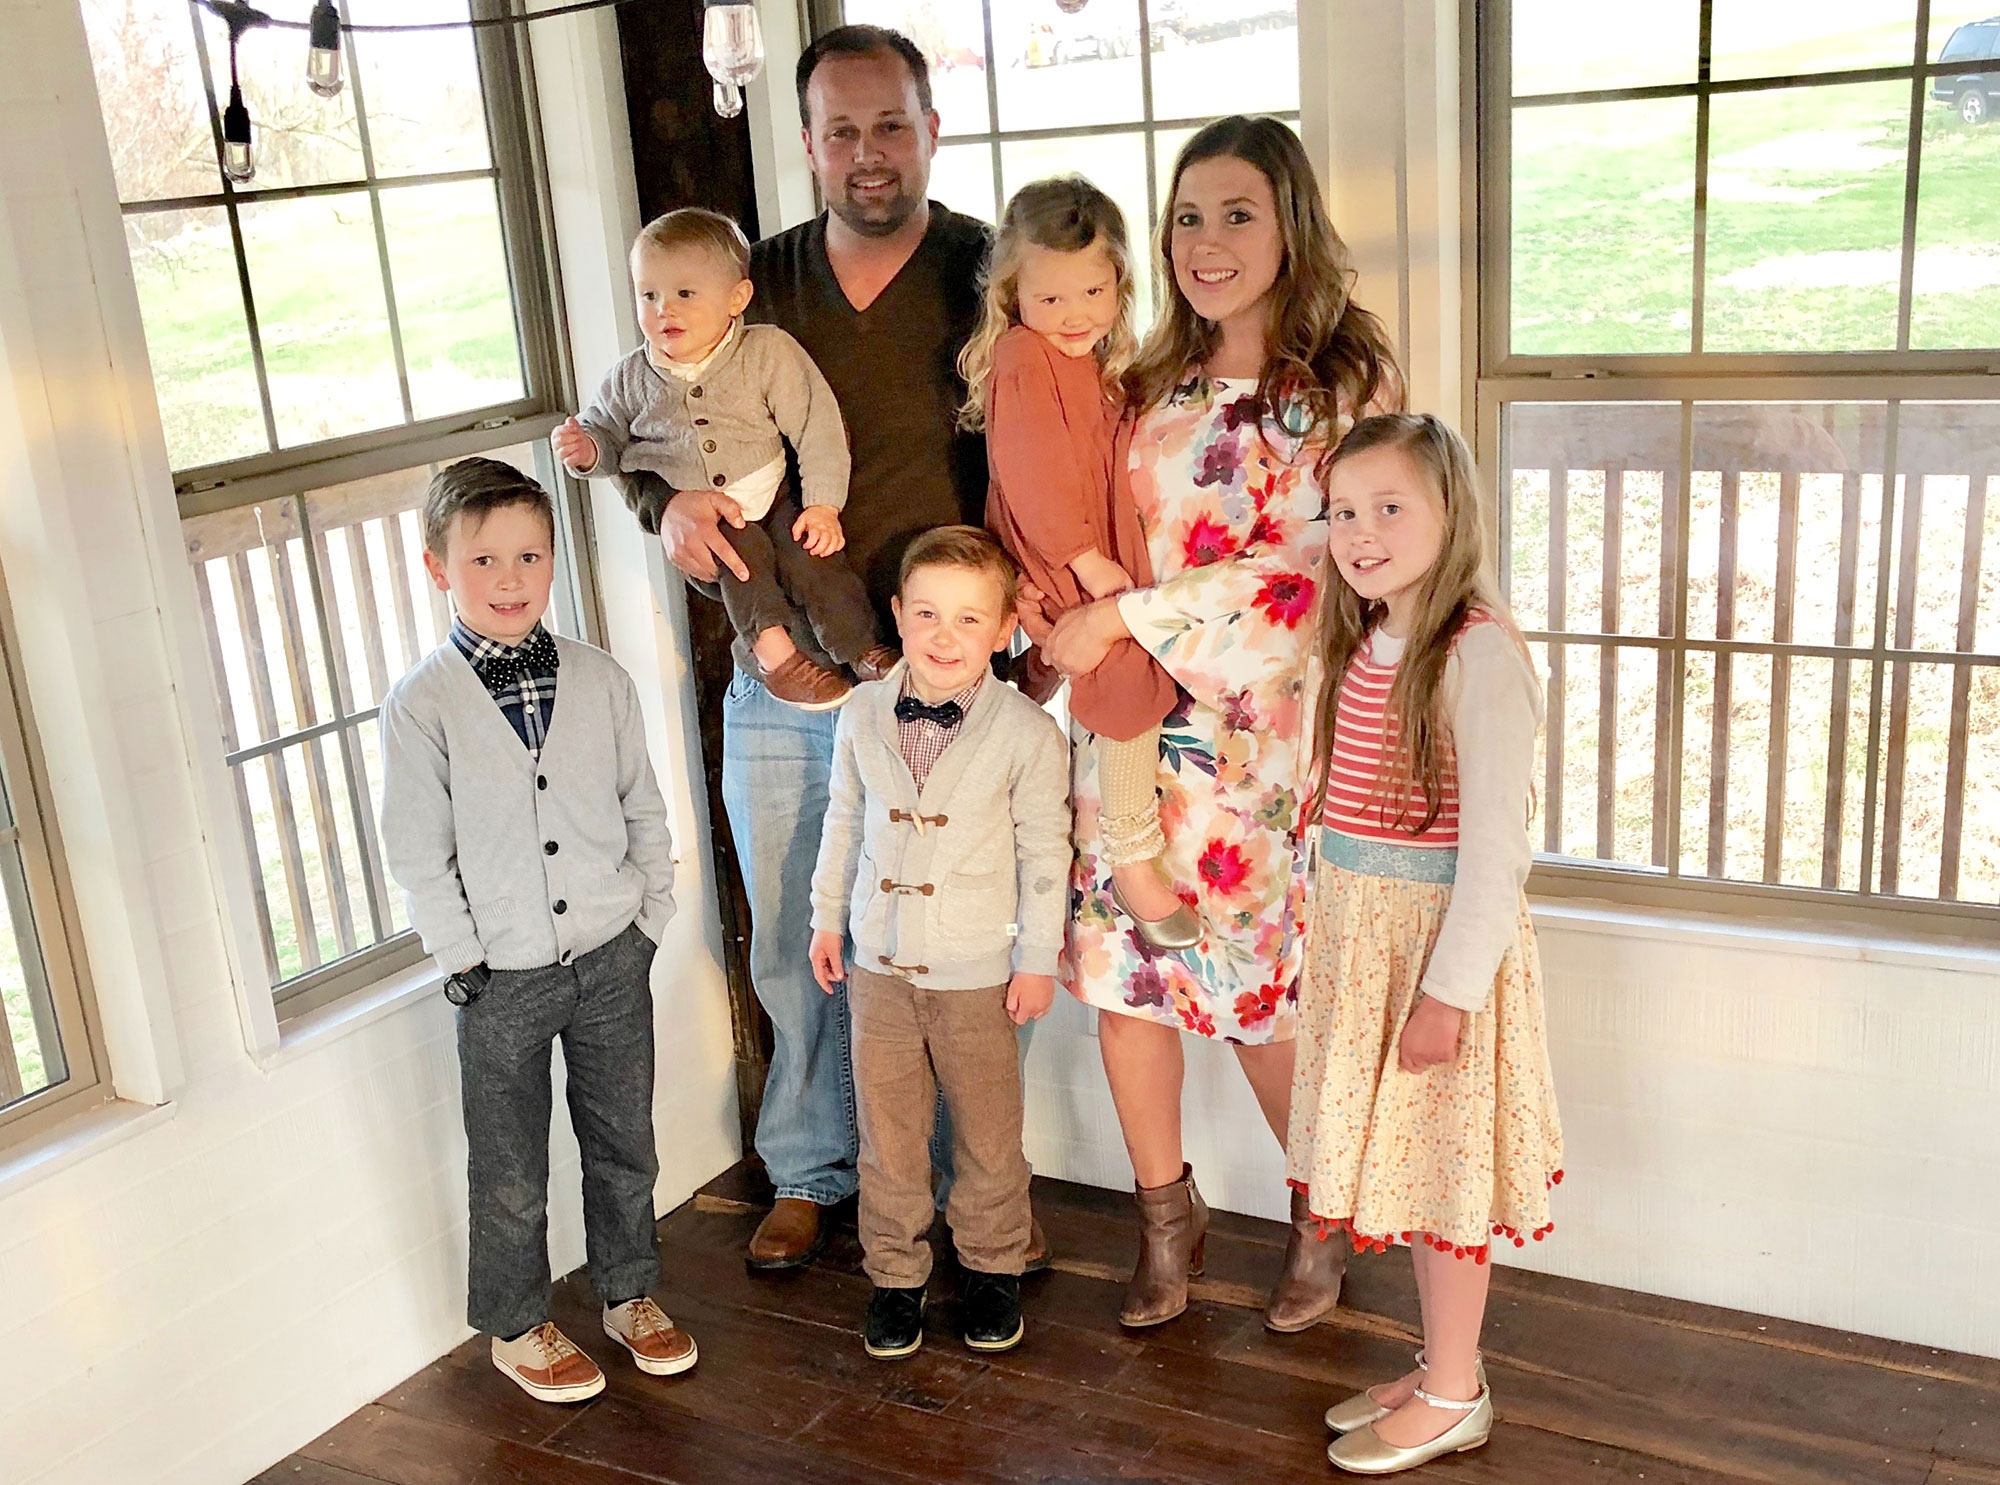 The Duggars: A Comprehensive Guide of the Famous Family